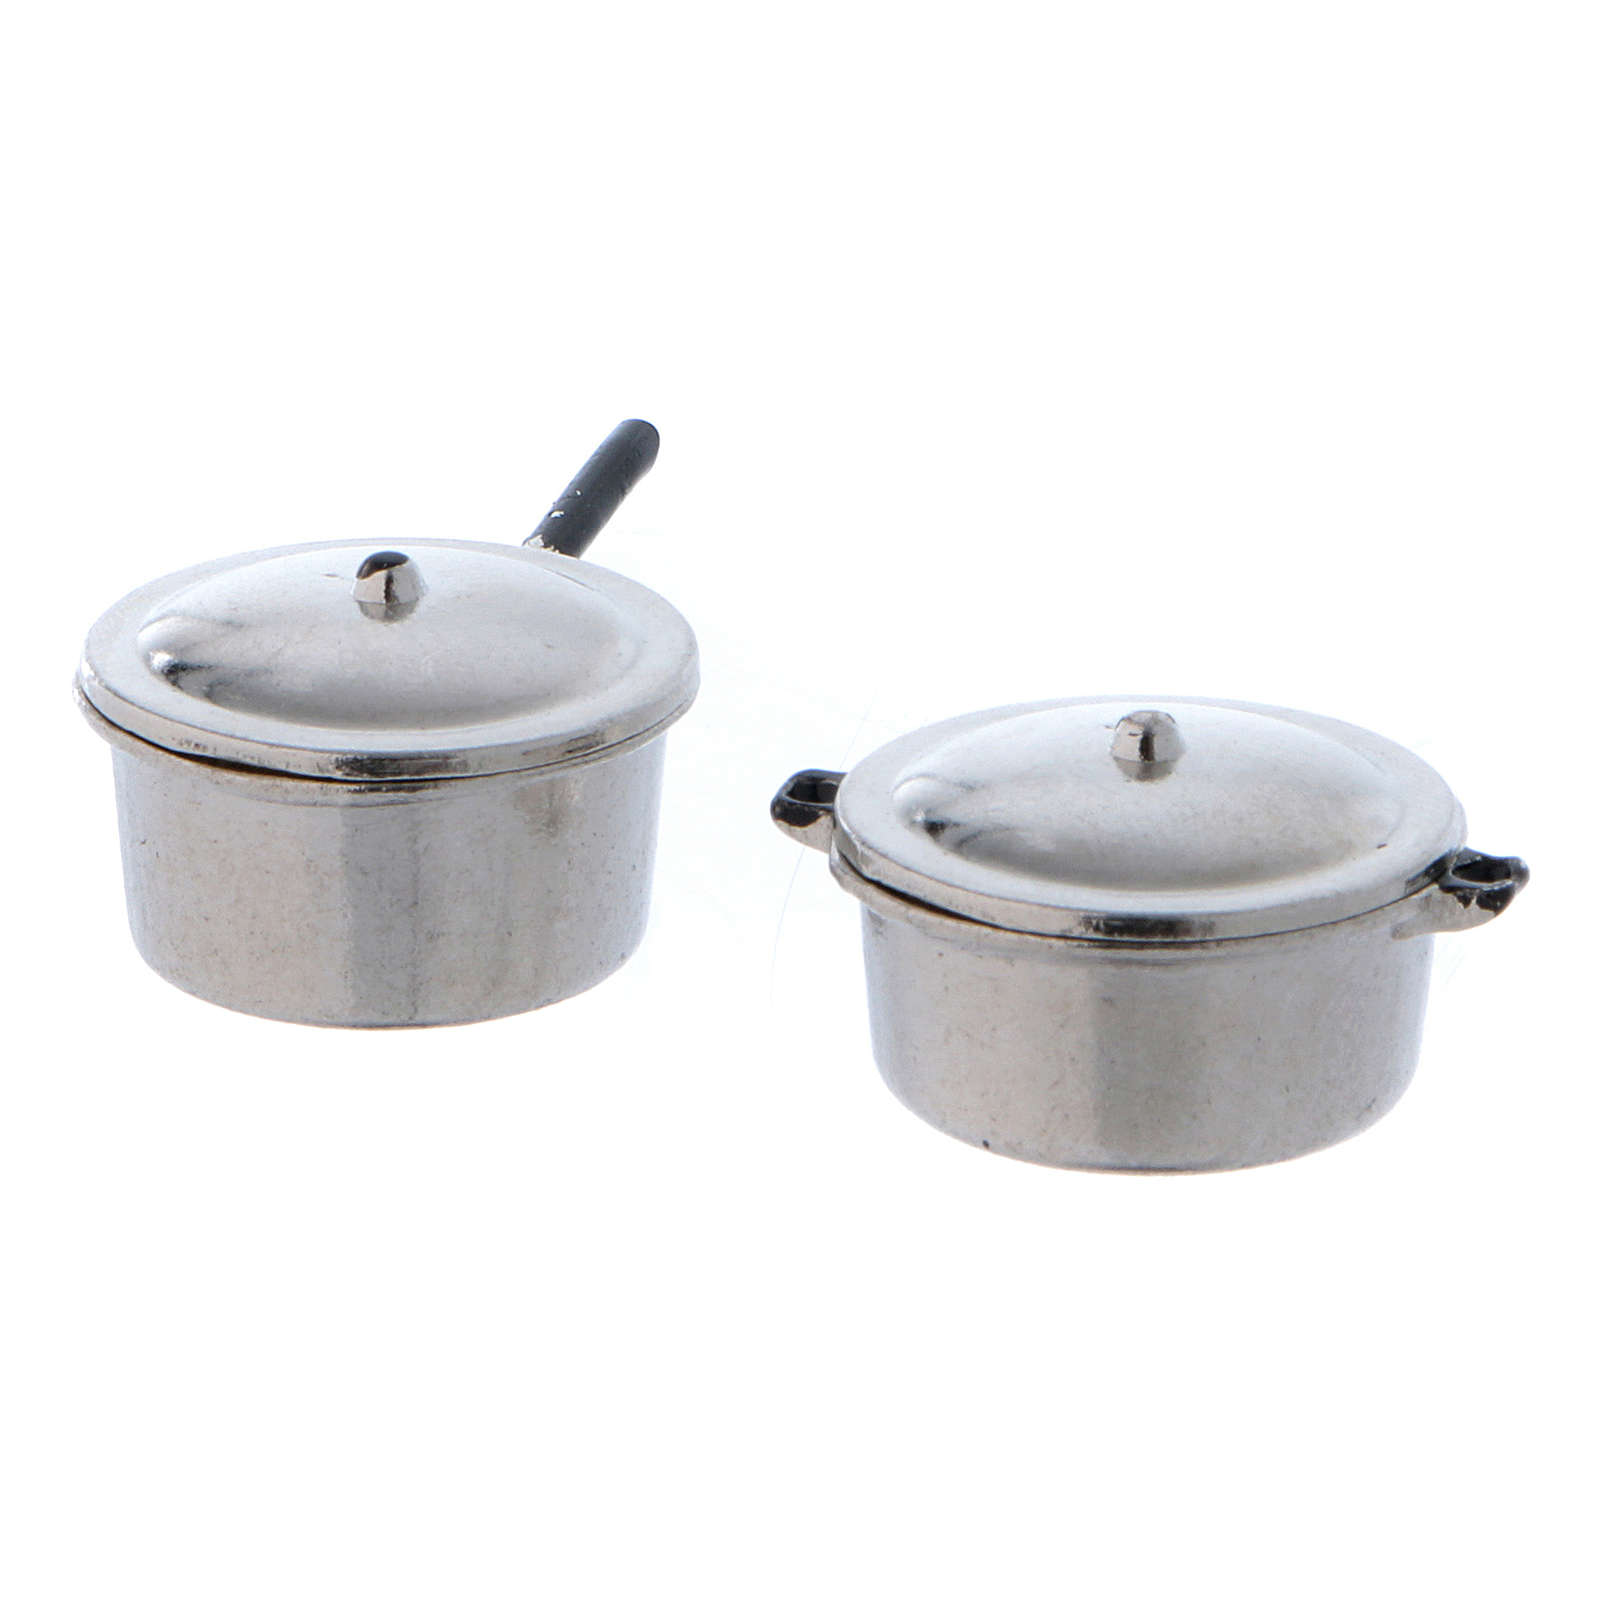 Steel pots with lid with diameter 2 cm 4